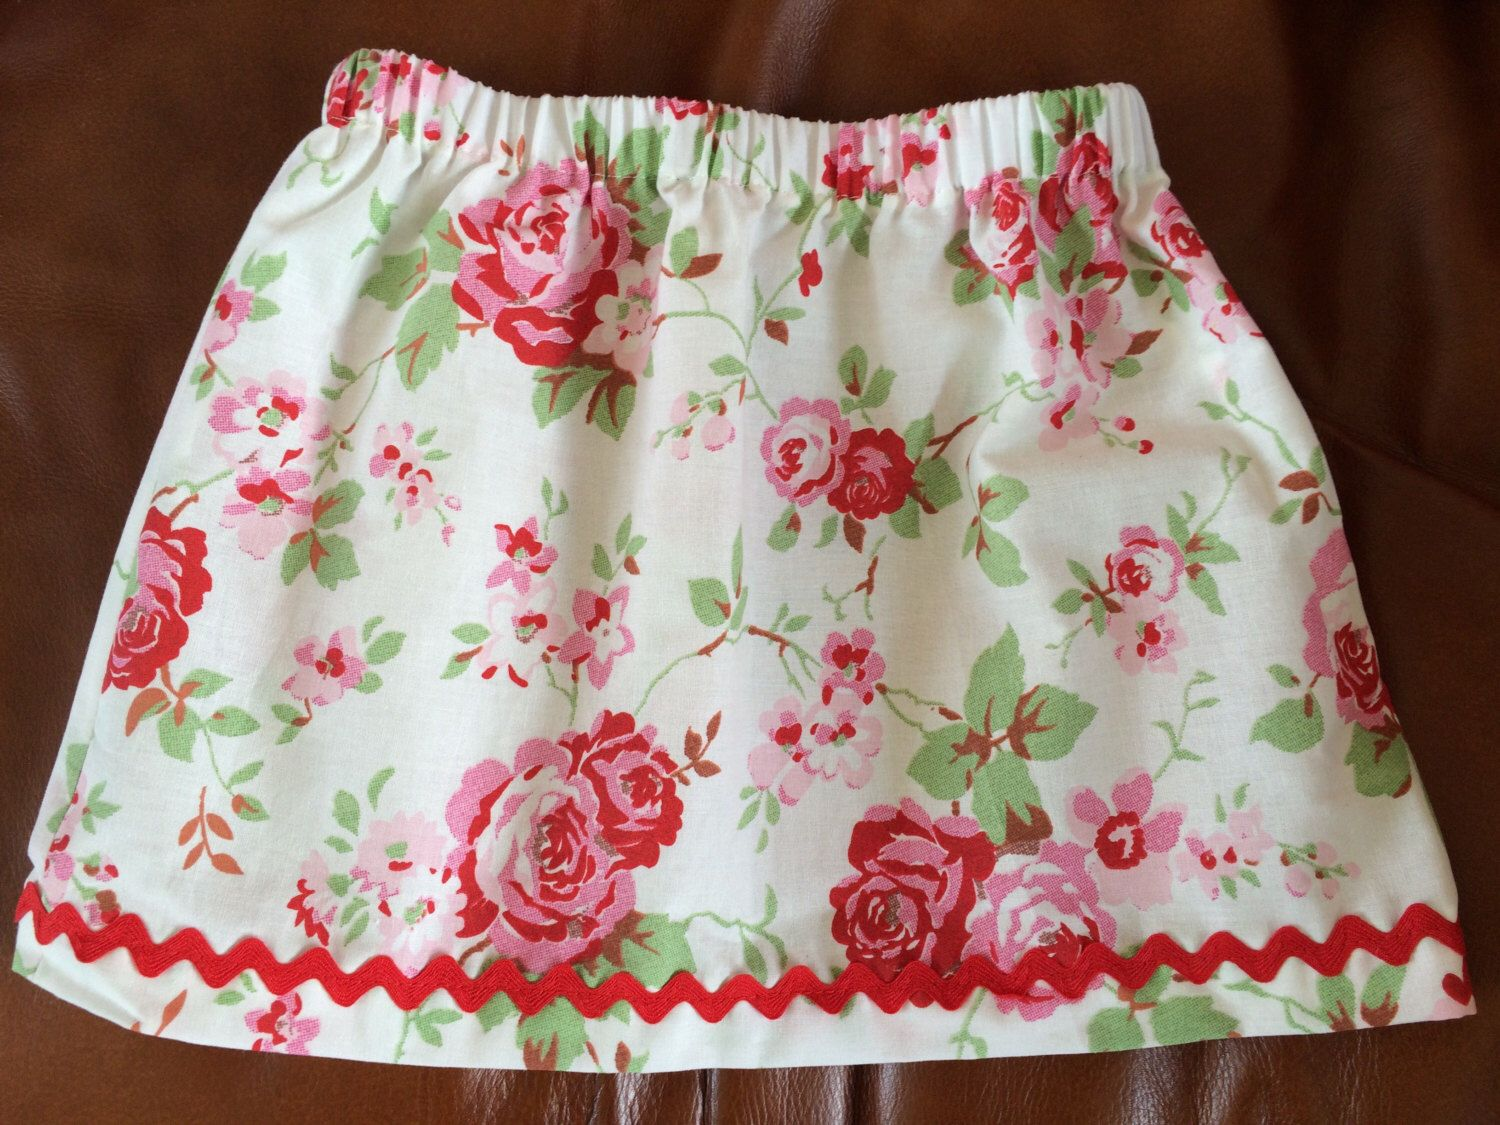 Making this for Elise! Skirt in Cath Kidston Fabric 18m by StitchnStick on Etsy https://www.etsy.com/listing/385155428/skirt-in-cath-kidston-fabric-18m